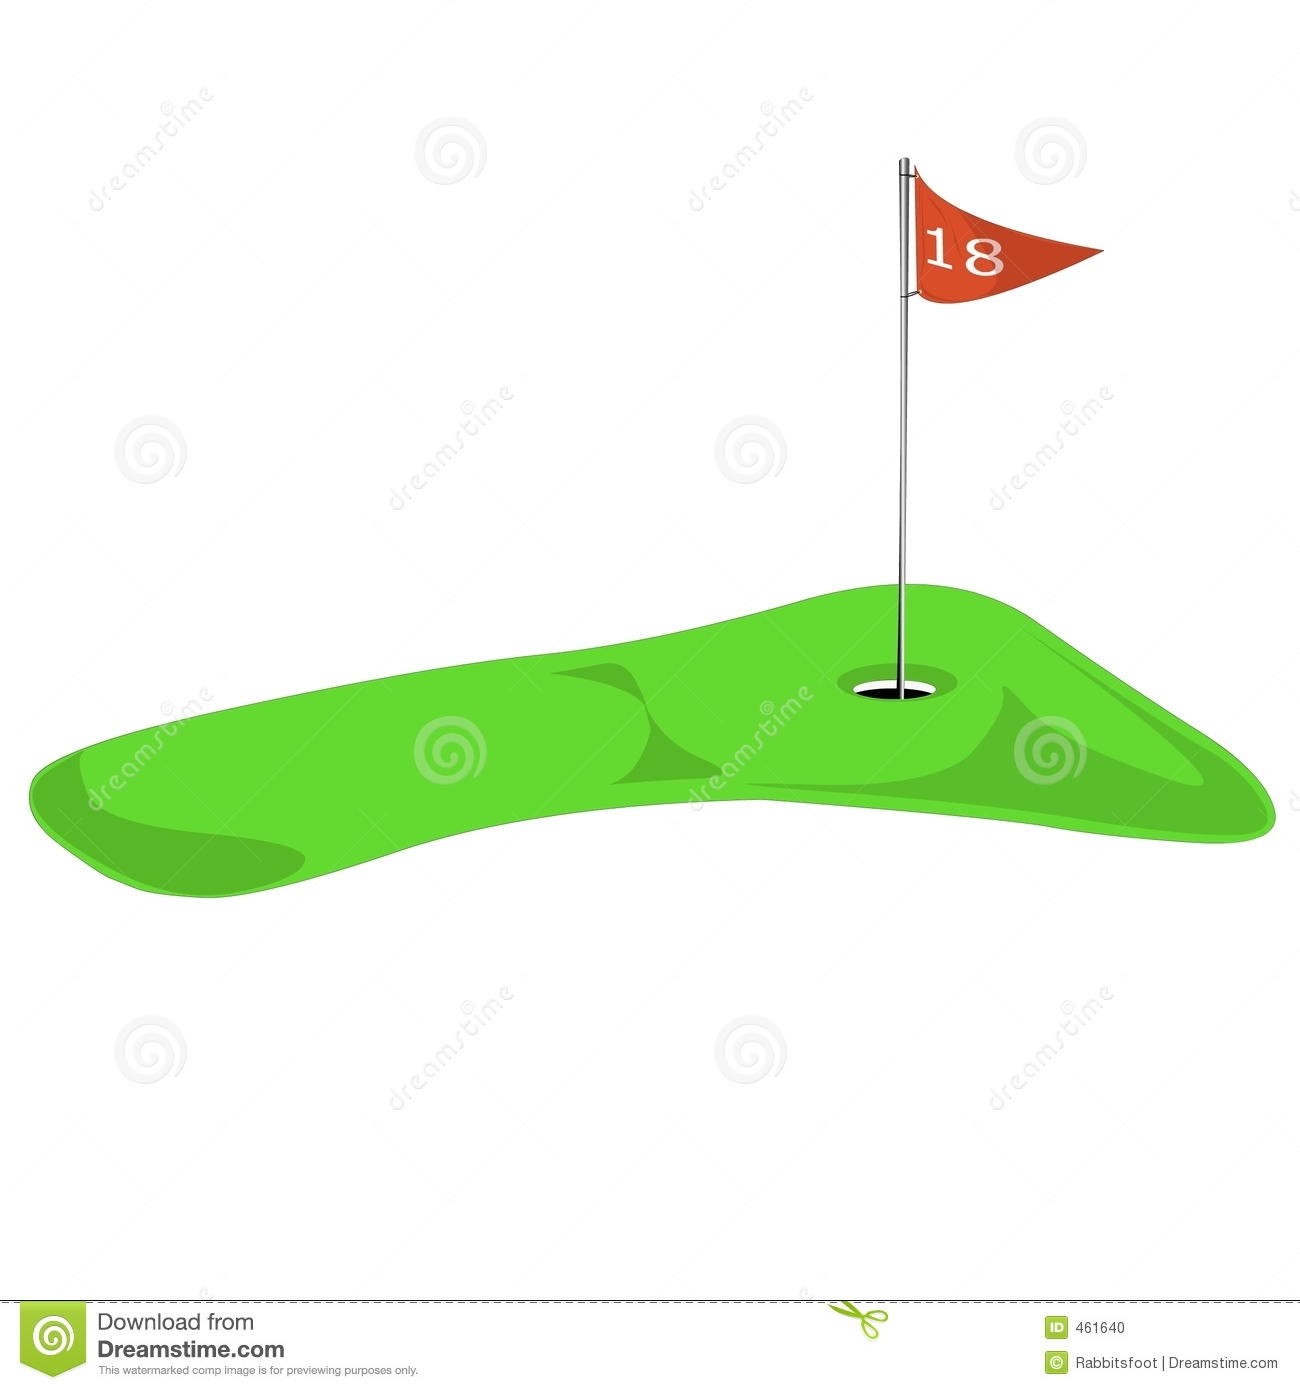 18th flag clipart transparent library Golf green with flag on 18th   Clipart Panda - Free Clipart Images transparent library